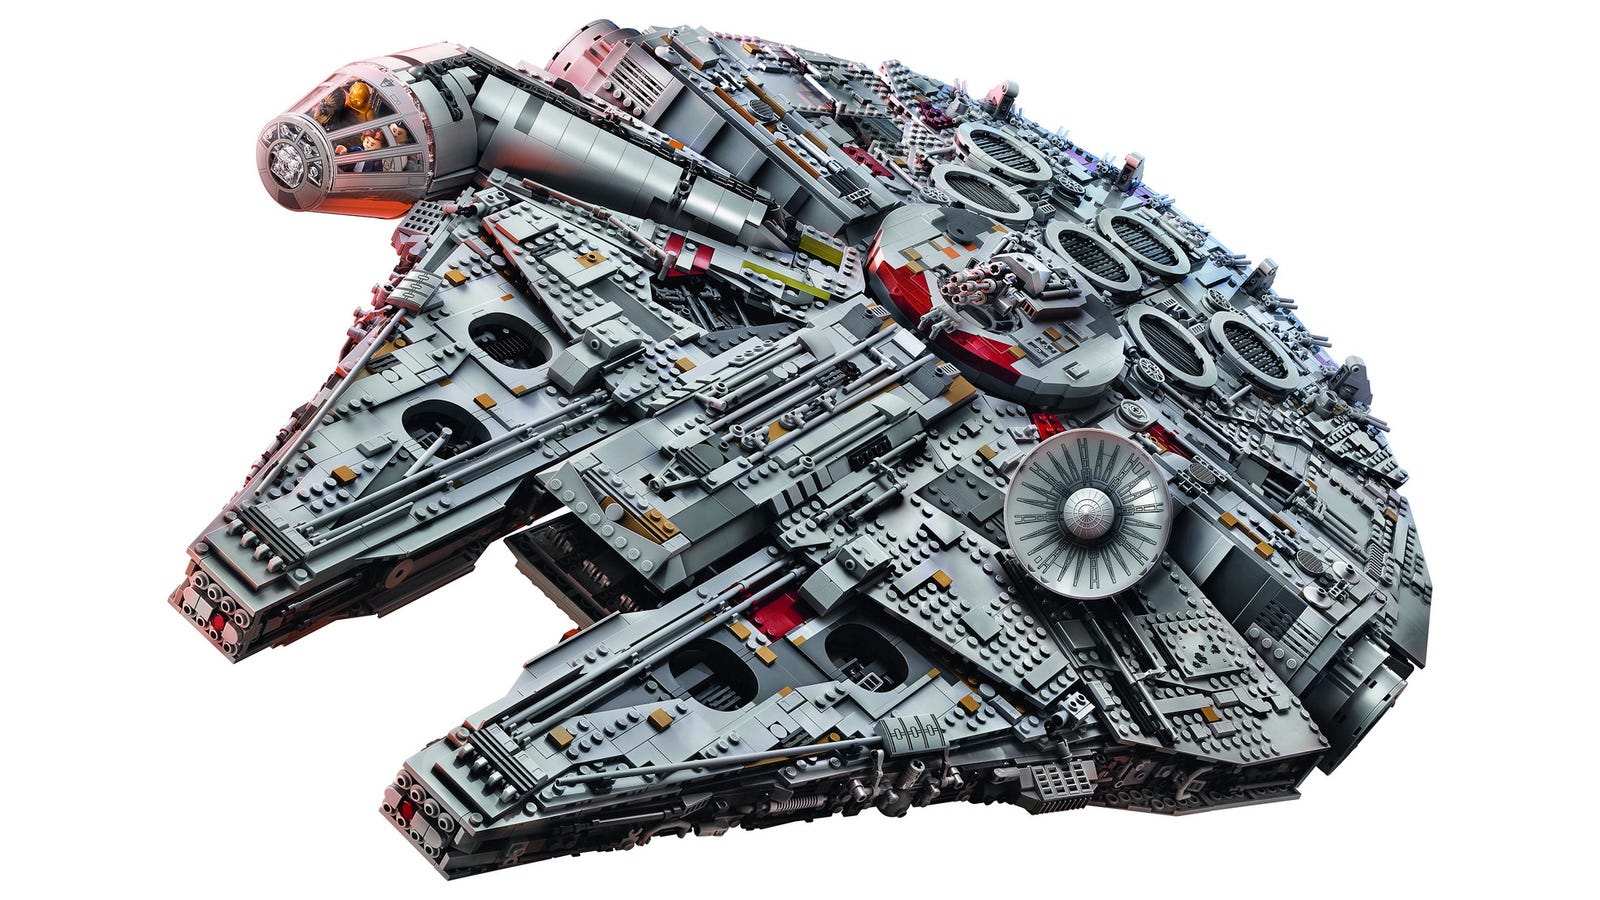 This 7,541-Piece Millennium Falcon Is the Largest, Most Desirable Lego Set Ever Created